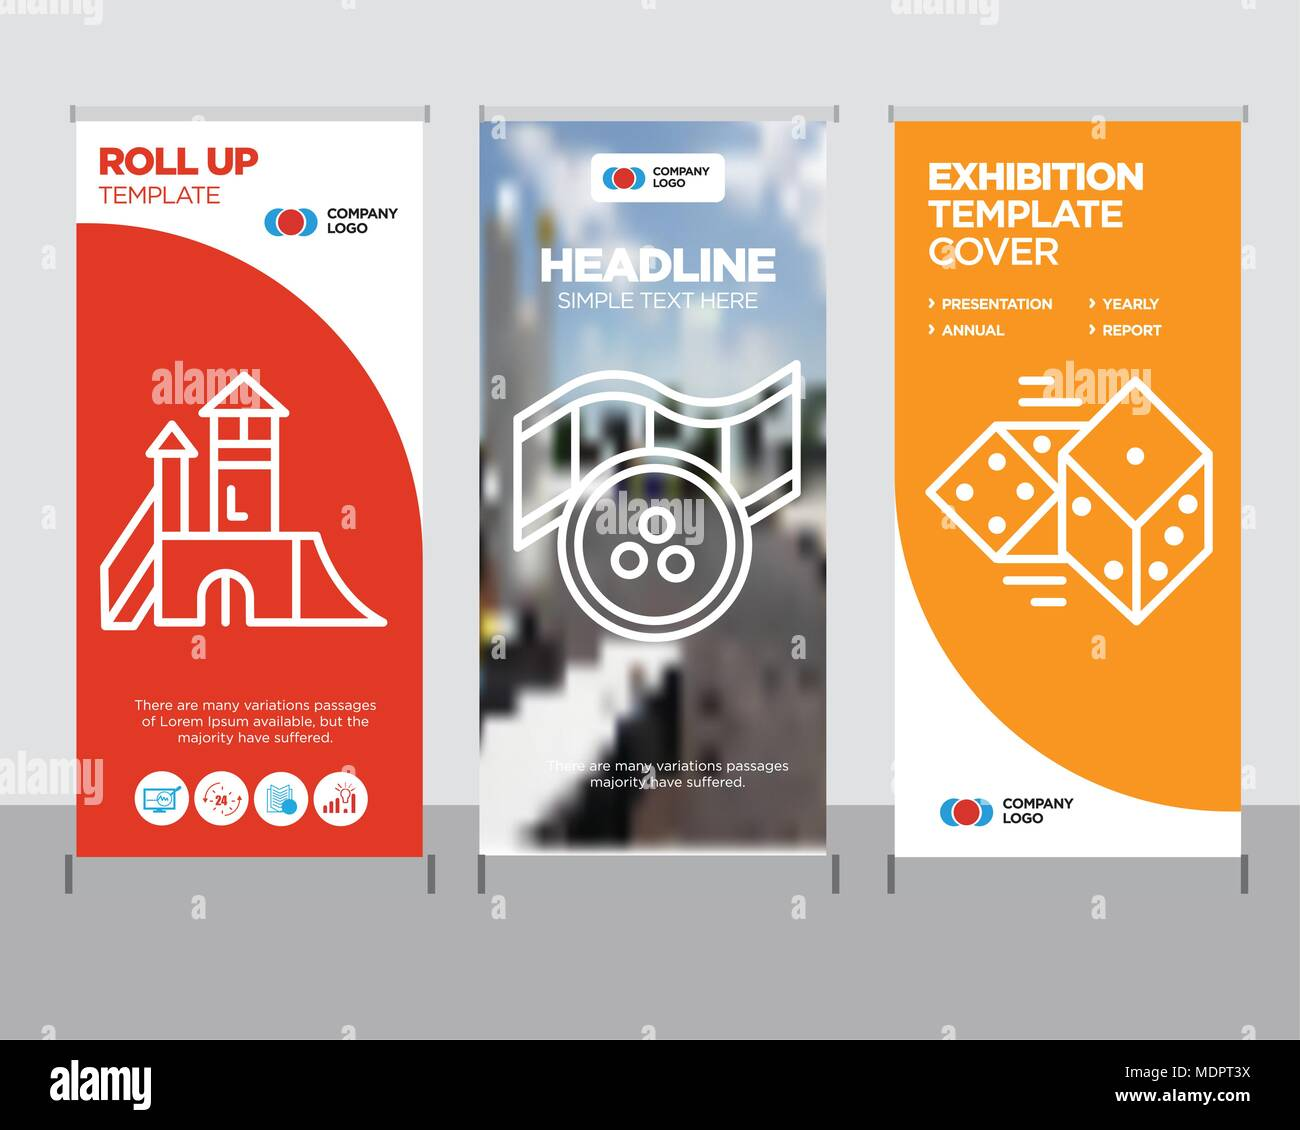 Dices Modern Business Roll Up Banner Design Template Movie Creative Poster Stand Or Brochure Concept Playground Cover Publication